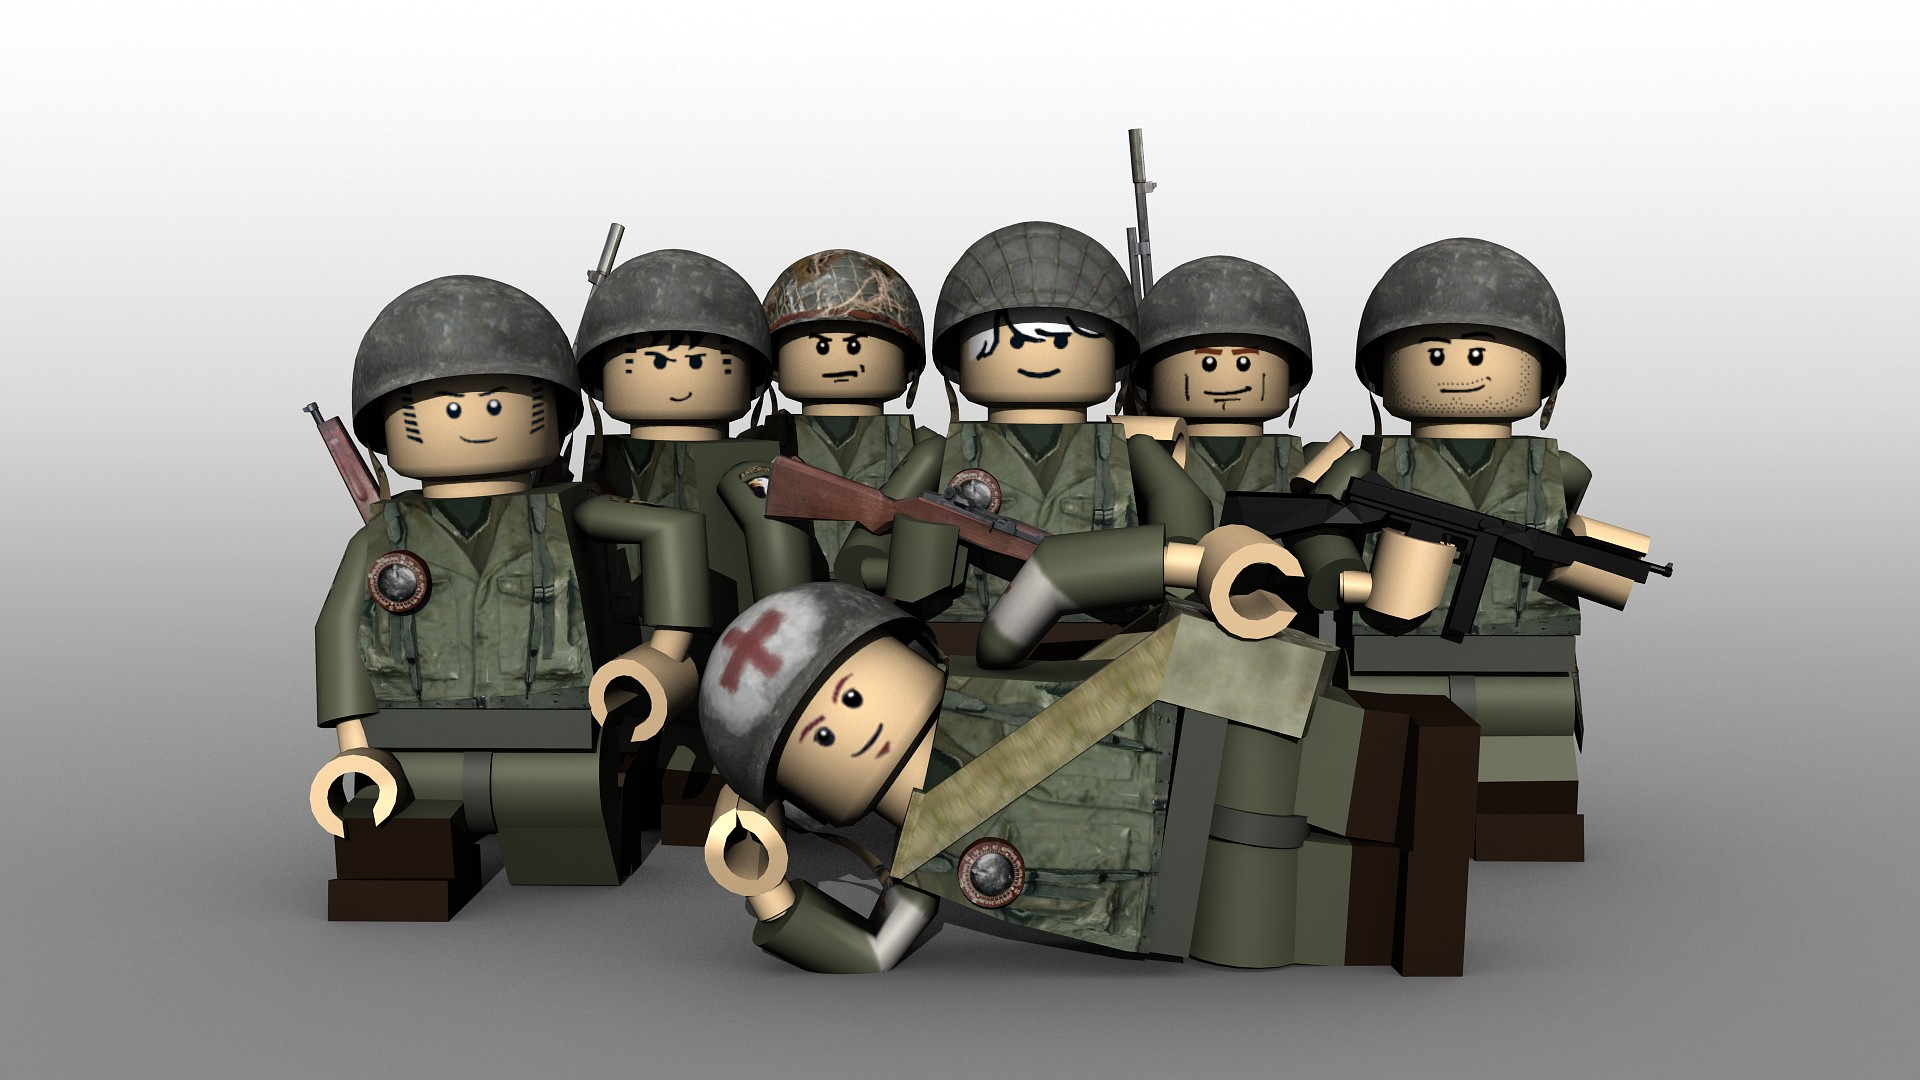 lego american soldiers ww2 by dino5500 on DeviantArt